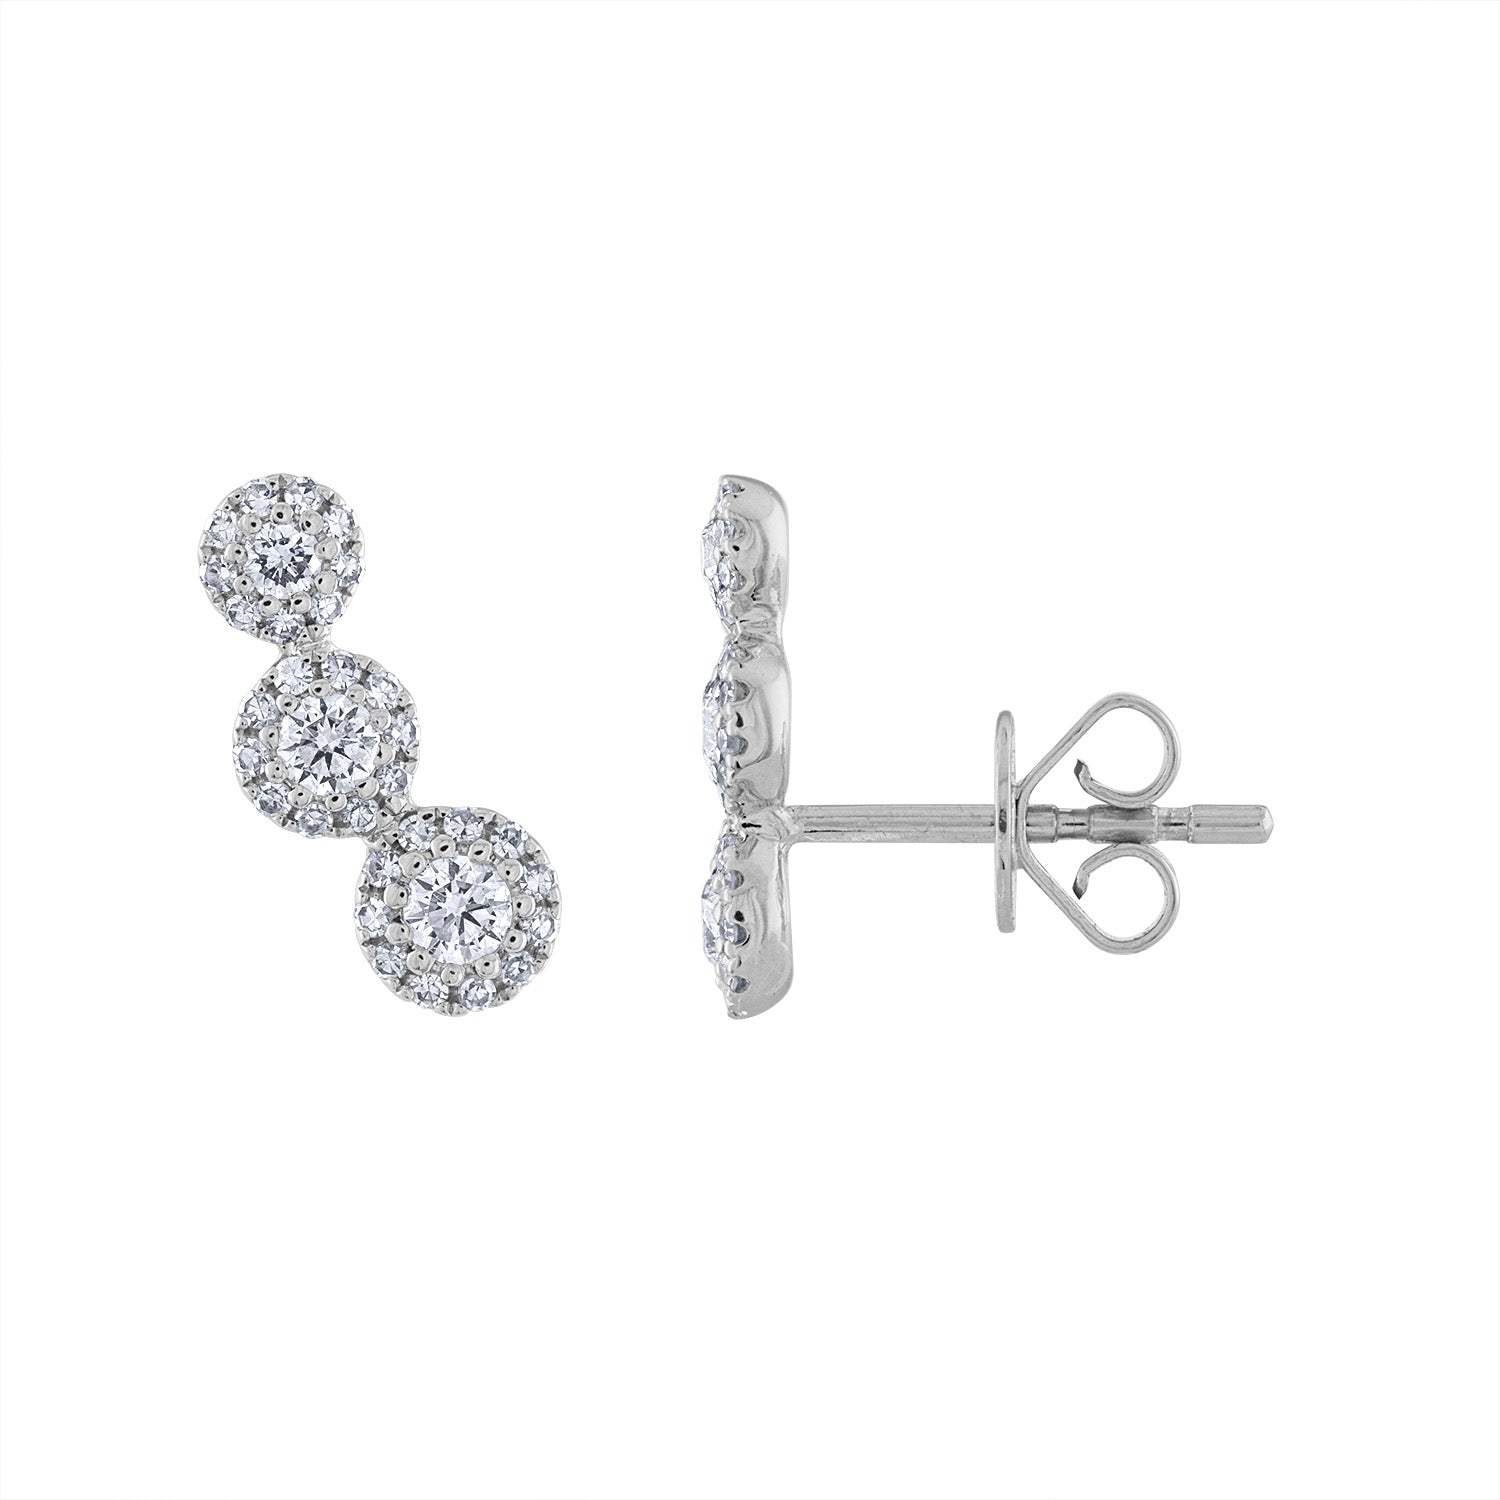 14KT GOLD THREE MARTINI SET DIAMOND CLIMBER EARRING